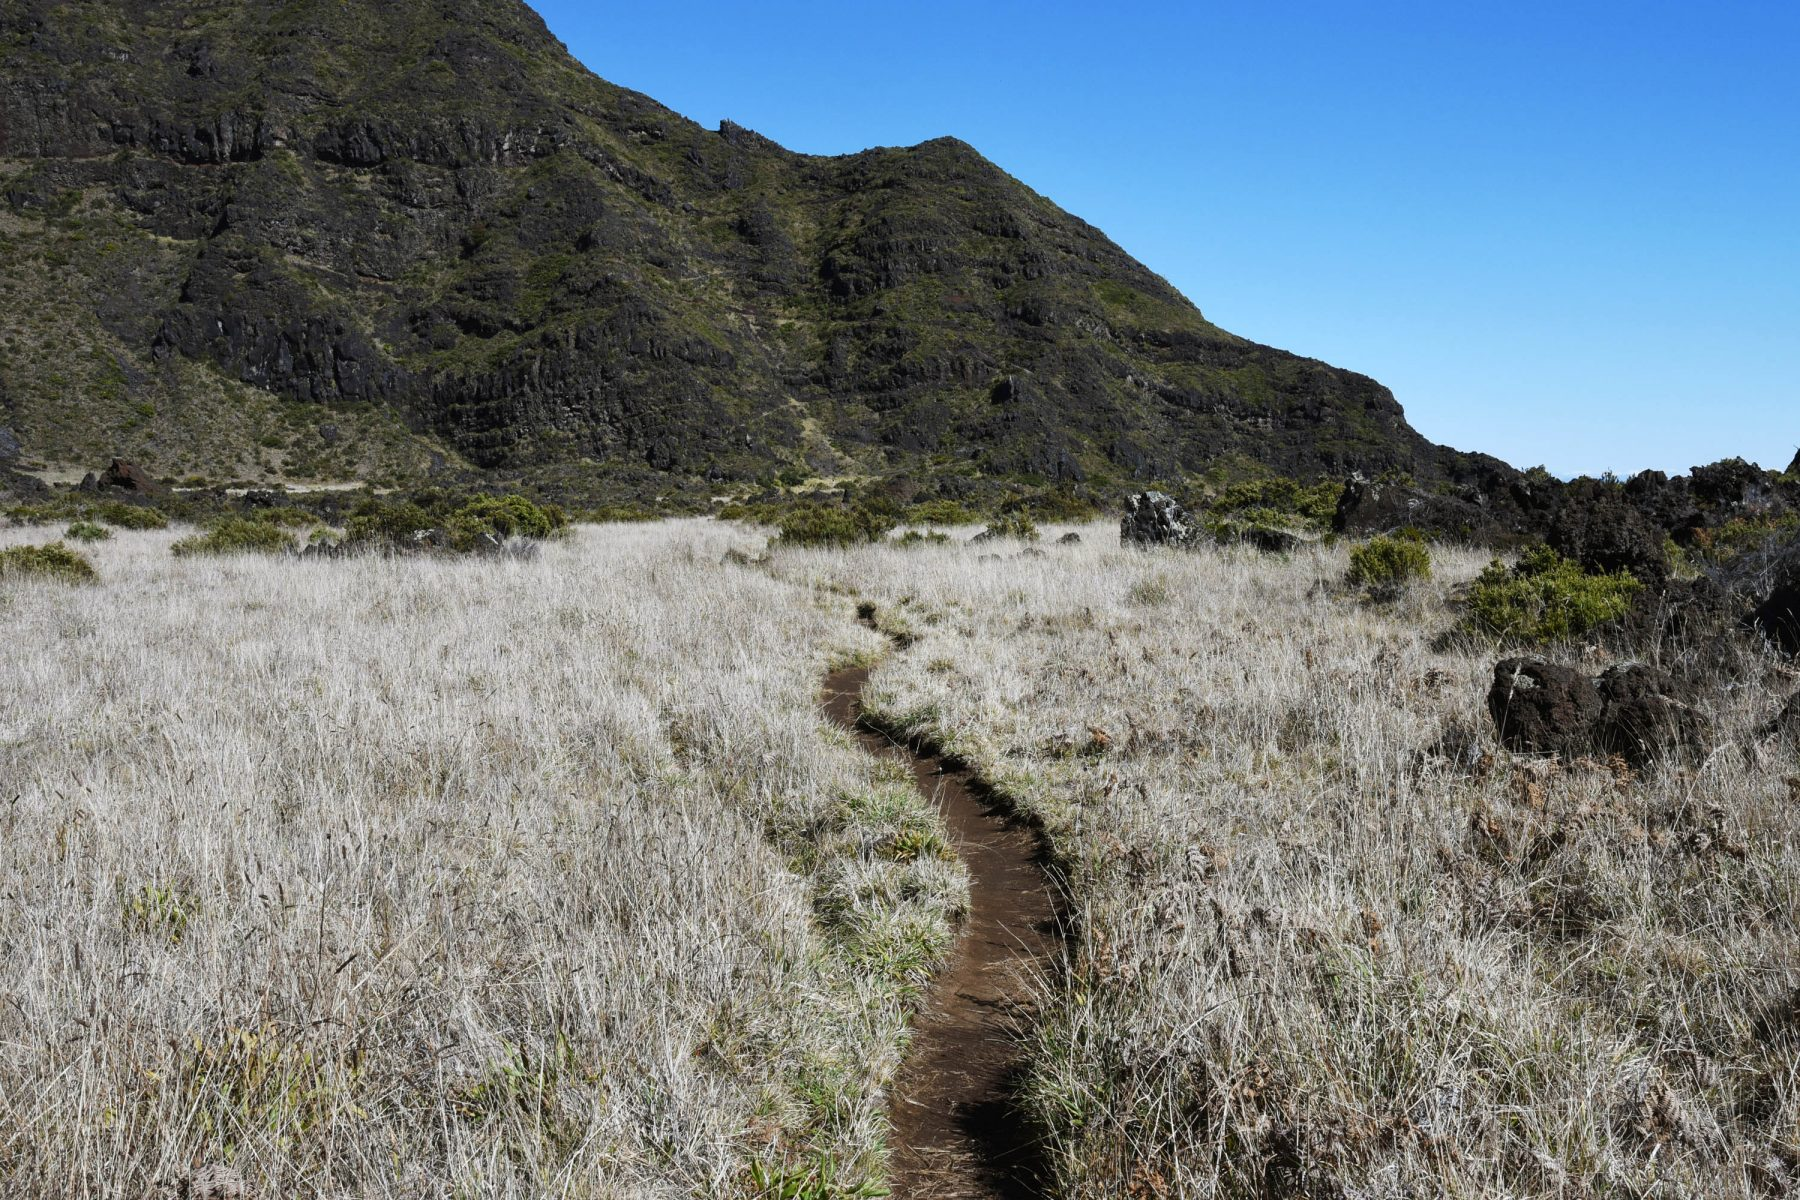 Approaching the switchbacks on the Halemau'u Trail